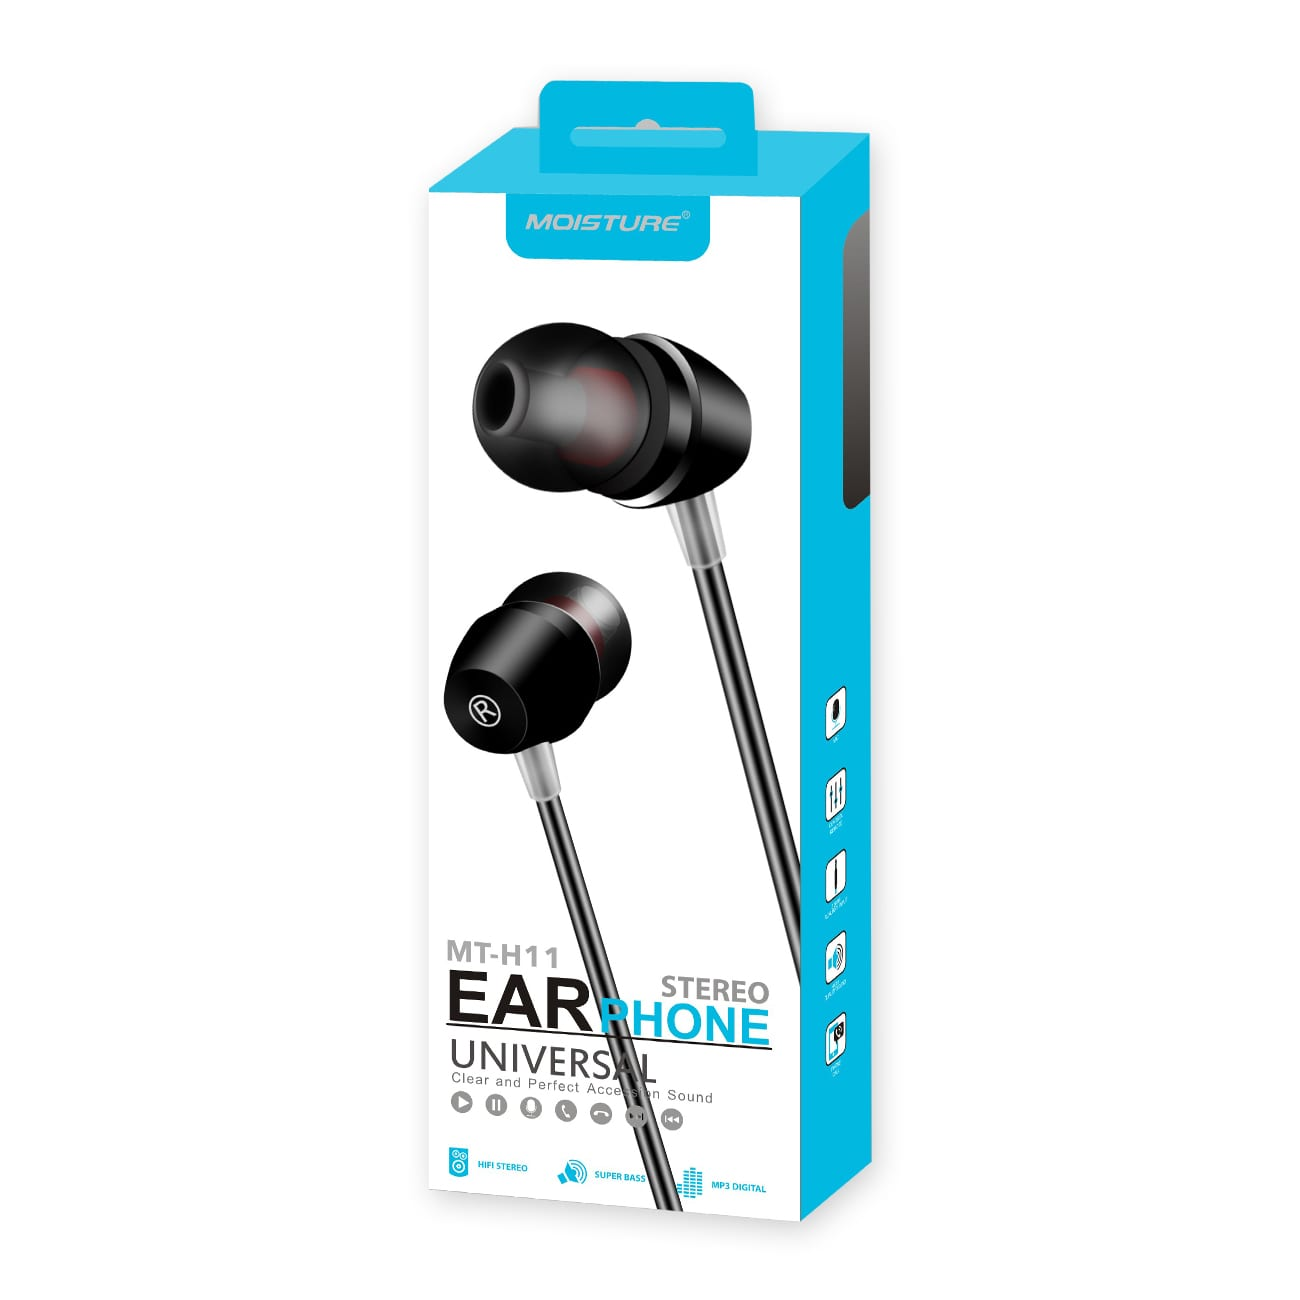 High Quality Sound  Universal In-ear Earphones In Black